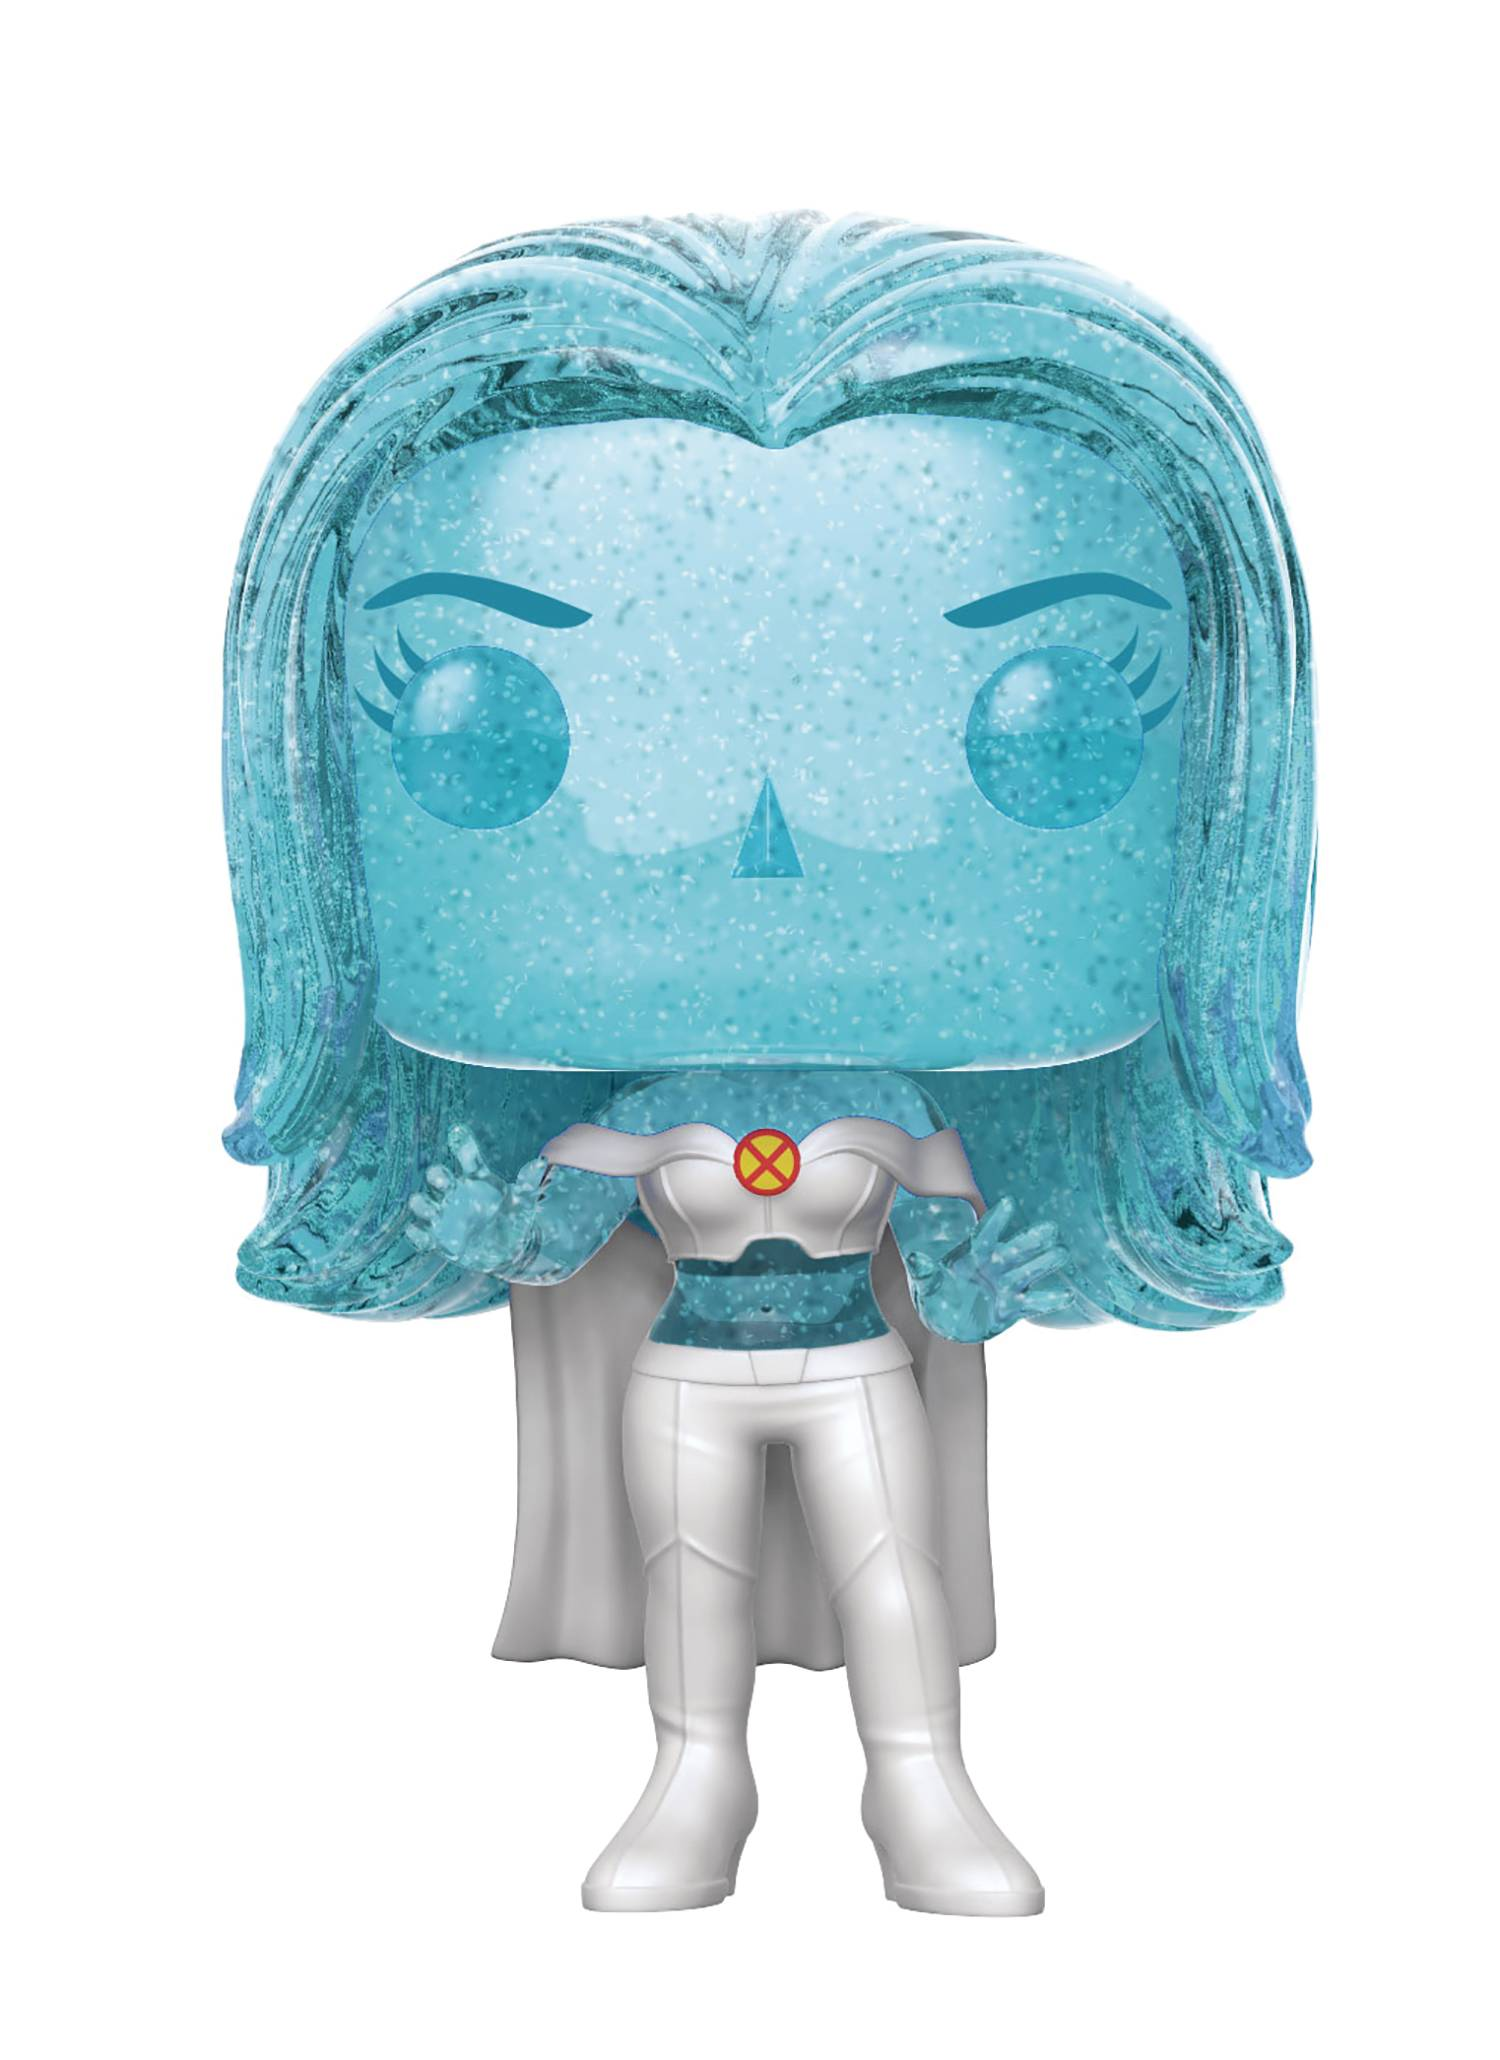 Emma Frost Pop! Figure - A Halloween ComicFest Exclusive! Available here at Cosmic Comix only on Saturday, October 28, on a first-come, first served basis!!